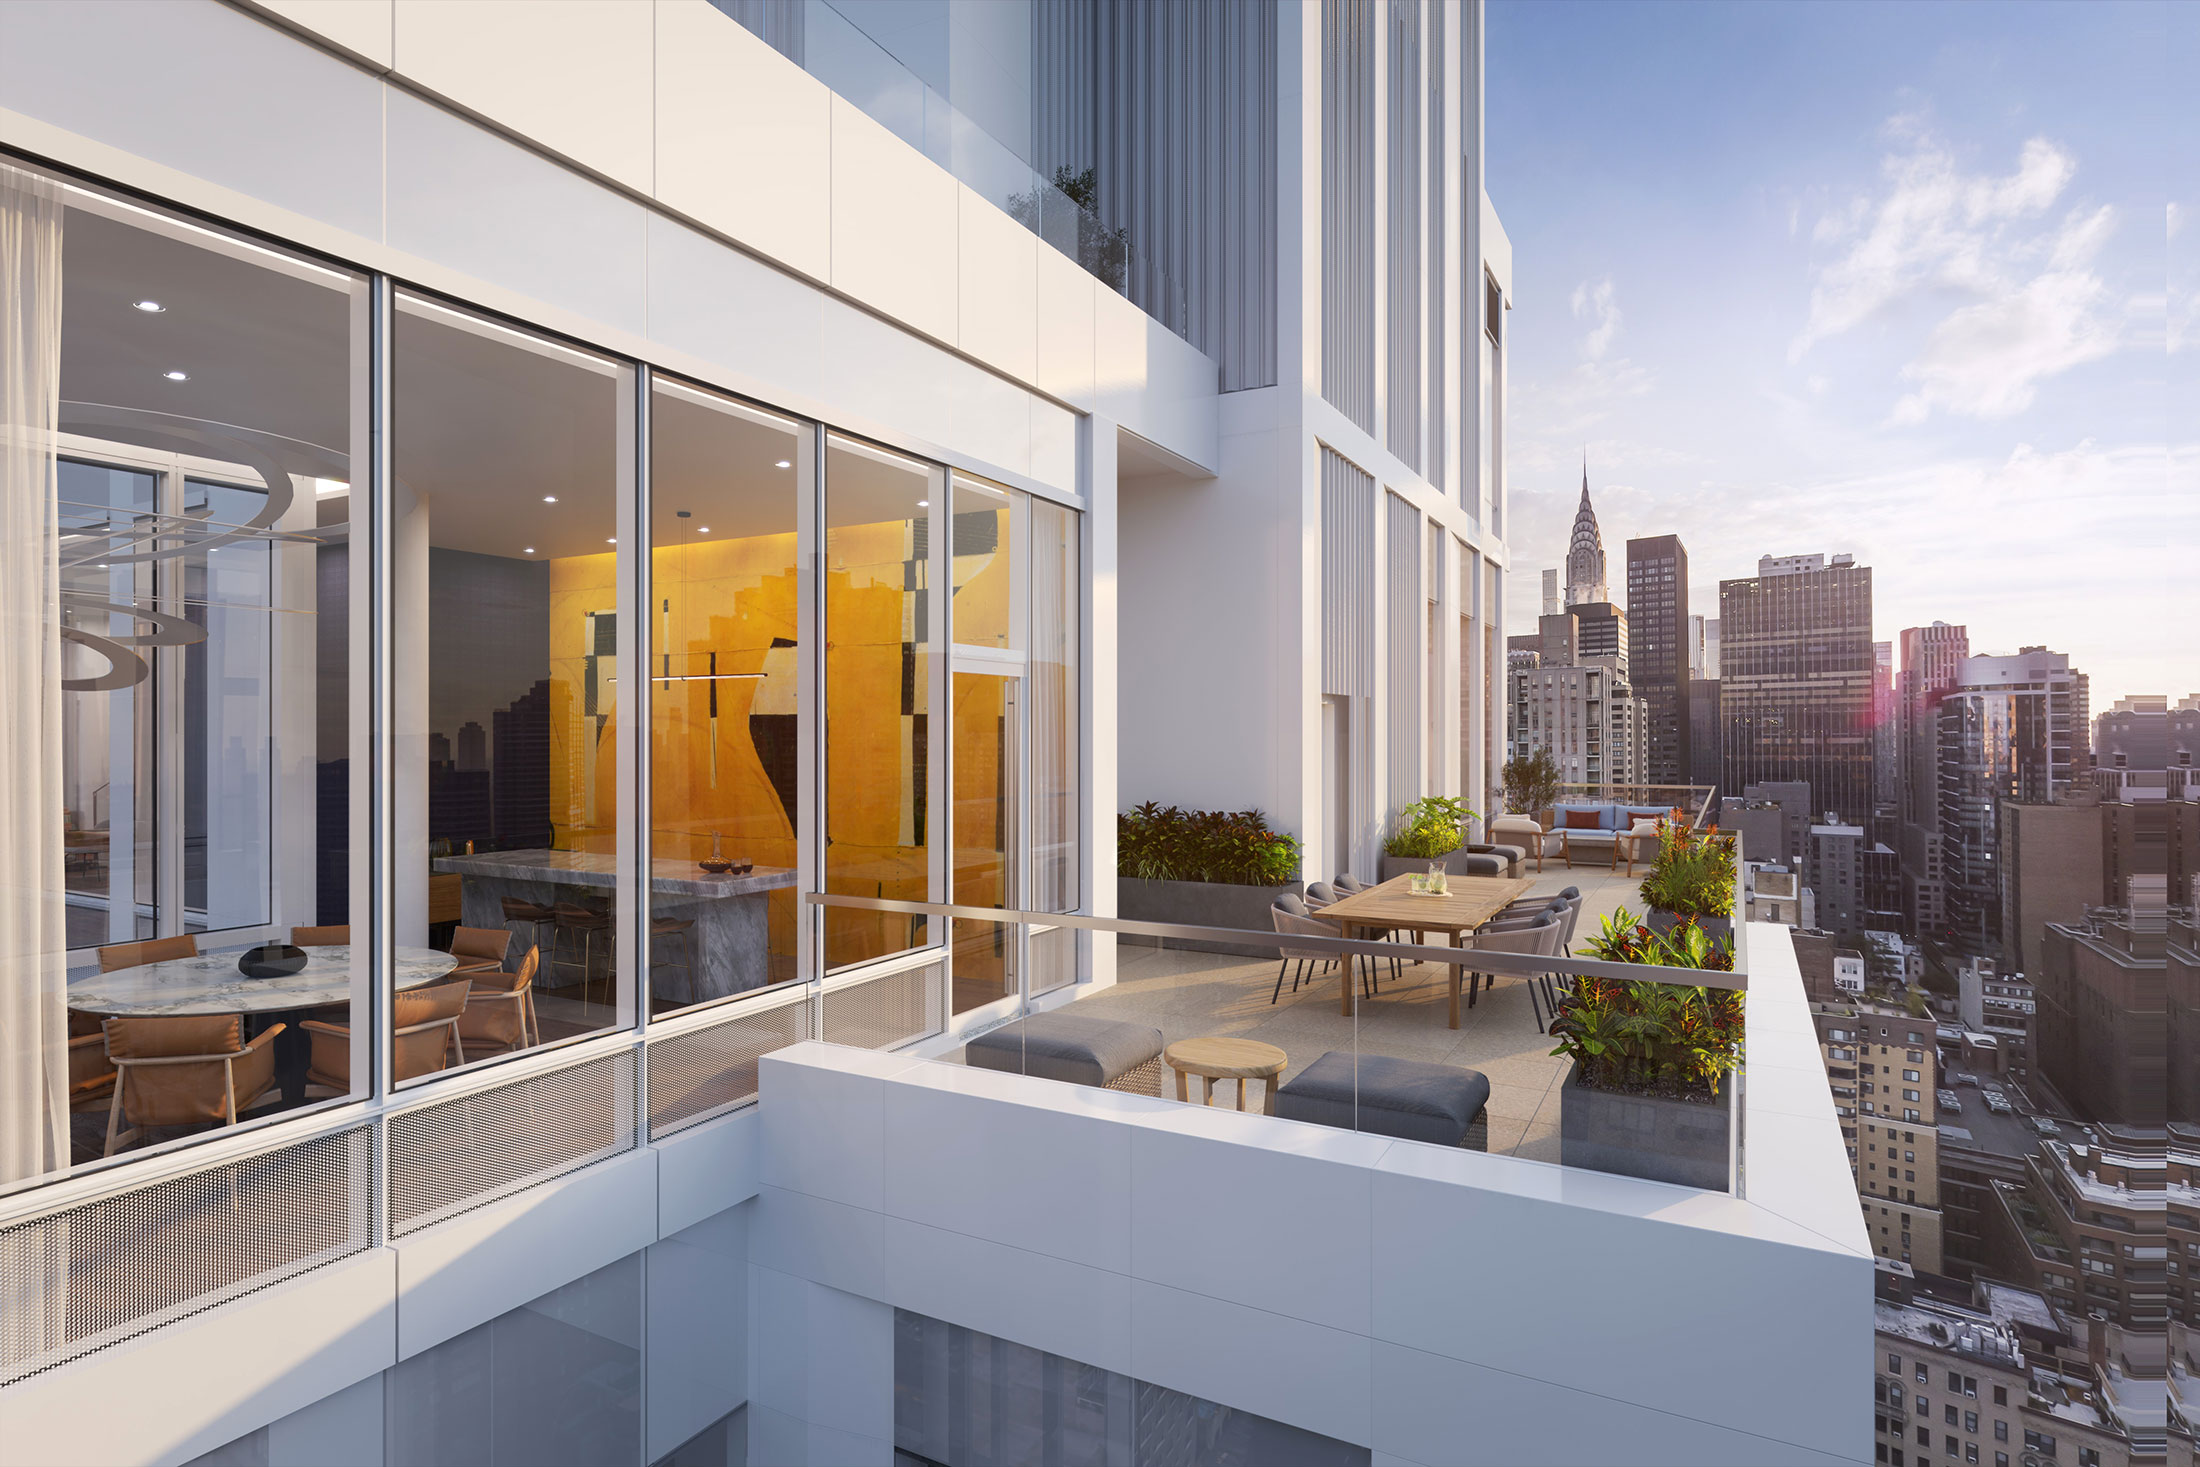 Architectural Rendering of the common terrace of the Eastlight building project located on the Kips Bay neighborhood in New York City